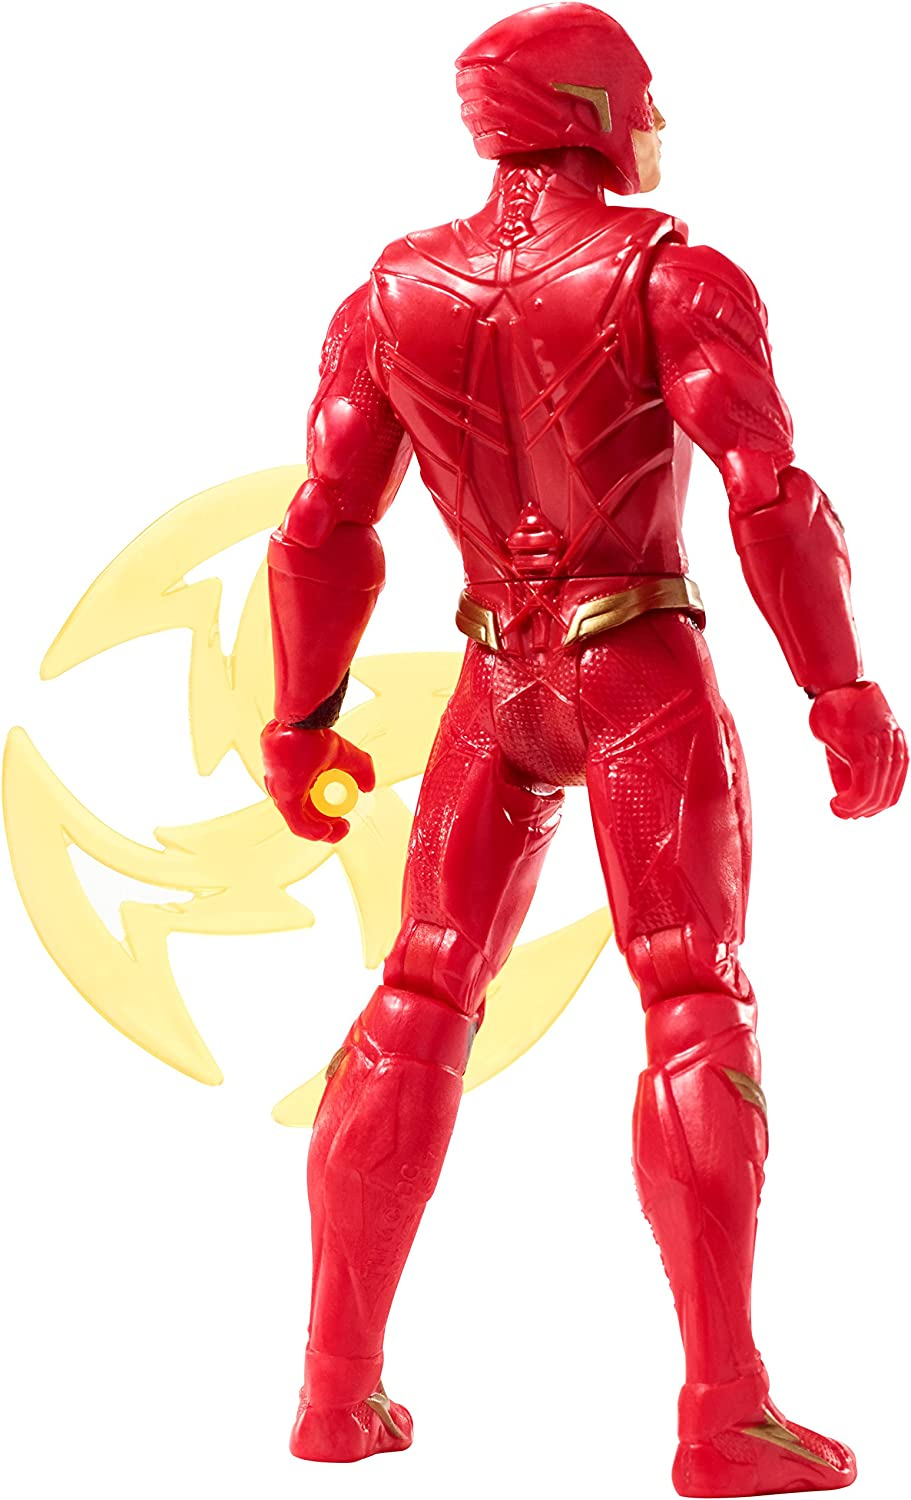 Red /& Gold Boots 1//6 scale toy Justice League The Flash Peg Type